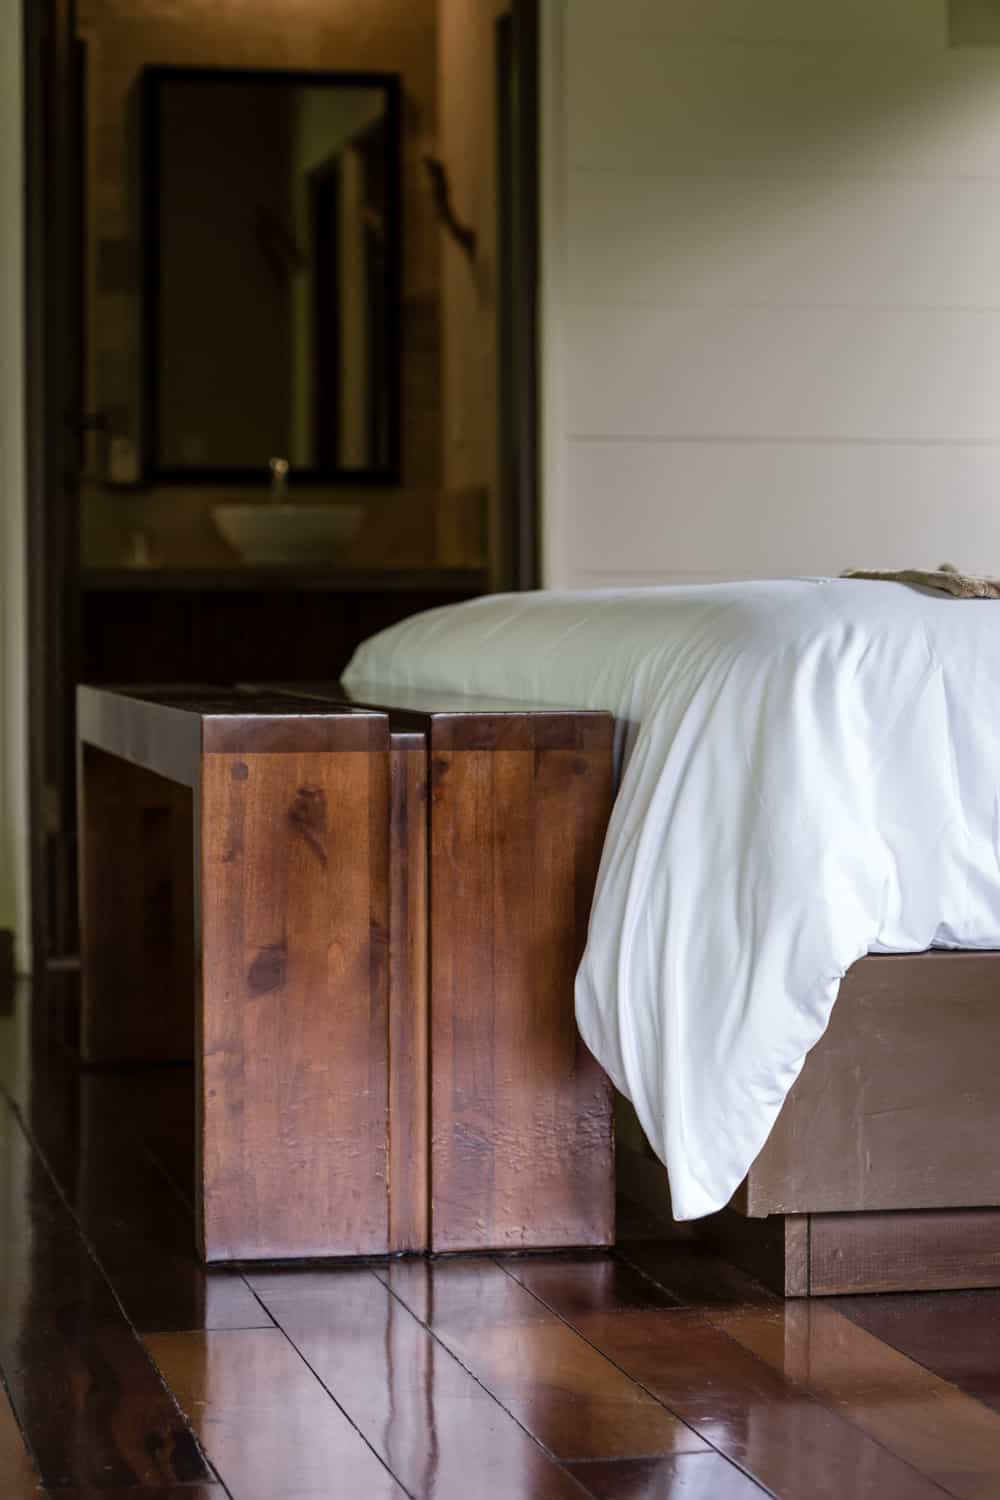 Beautiful wood floor and furniture in front of honeymoon bed.